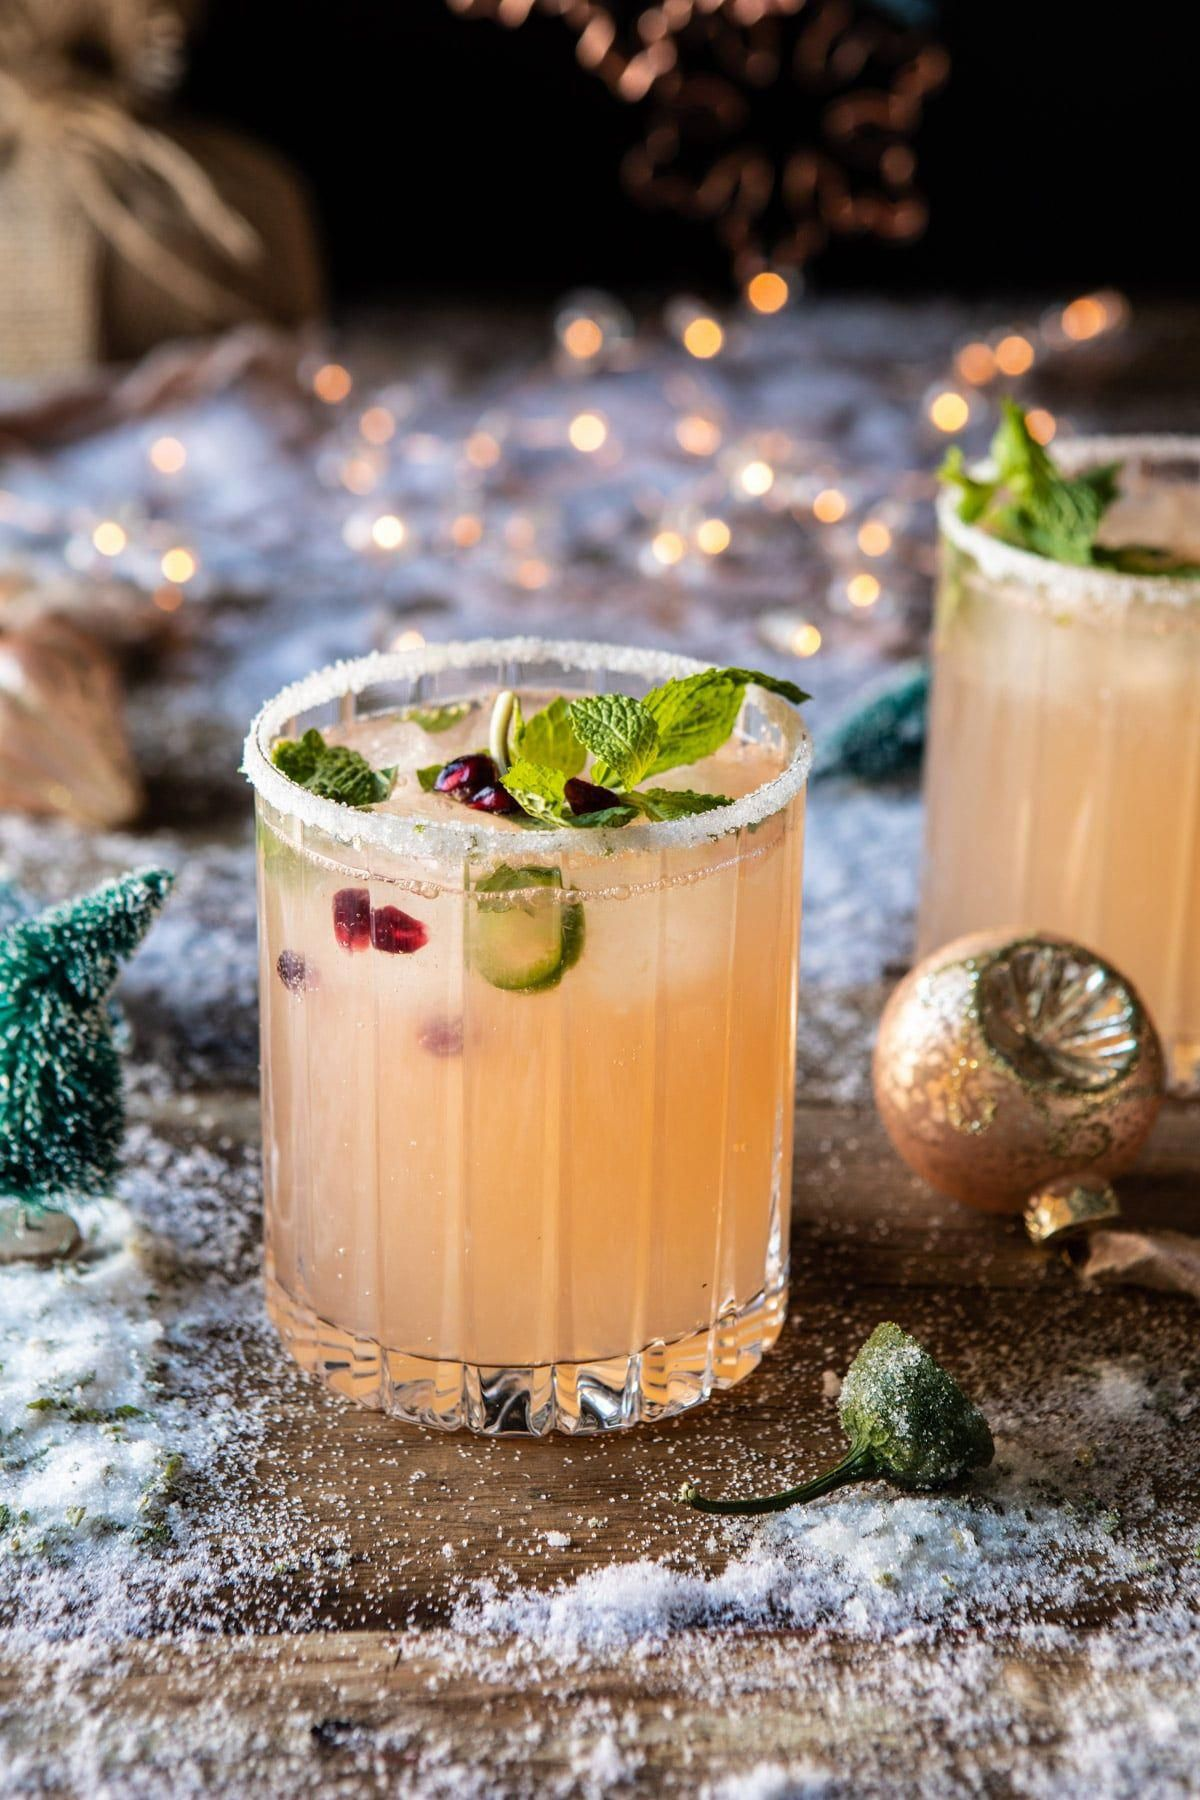 Half Baked Harvest has so many genius cocktail recipes, and this Grinch-y drink is fantastically warming and refreshing all at the same time. halfbakedharvest.com #thegrinch #christmasdrinksaturday #vodka #cocktailrecipes